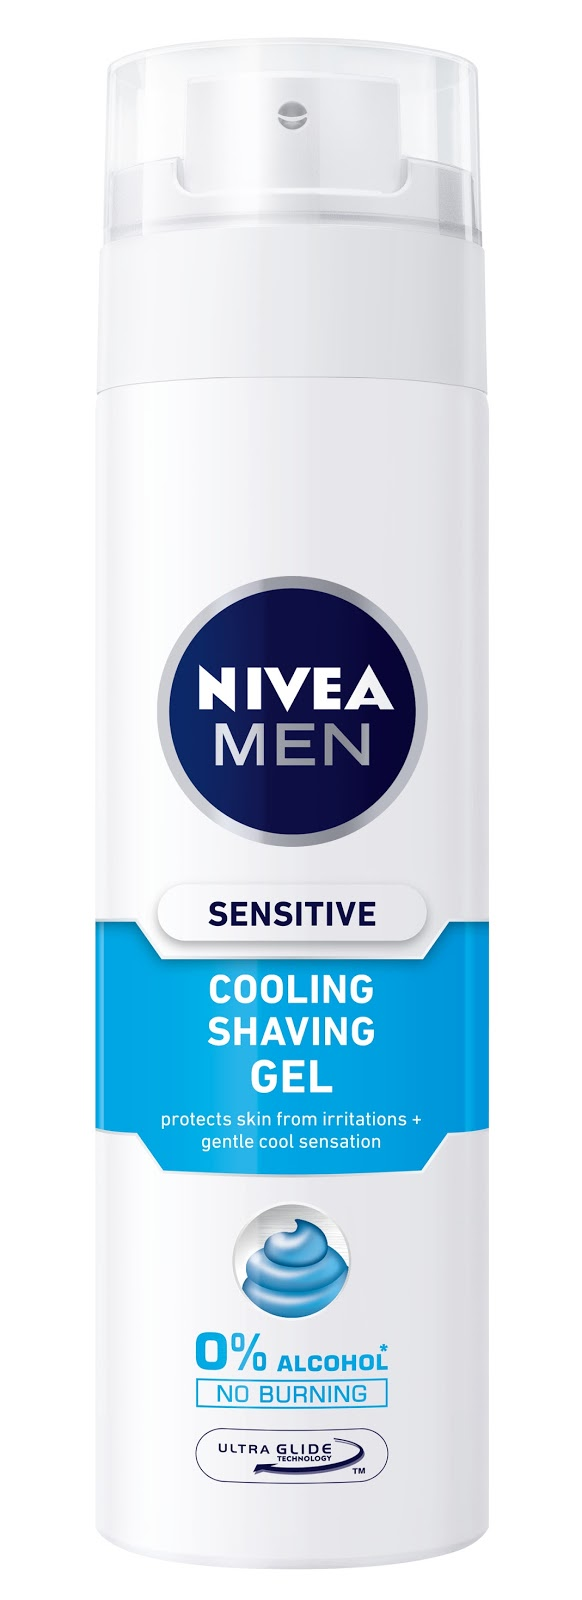 nivea_men_sensitive_cooling__shaving_gel_01